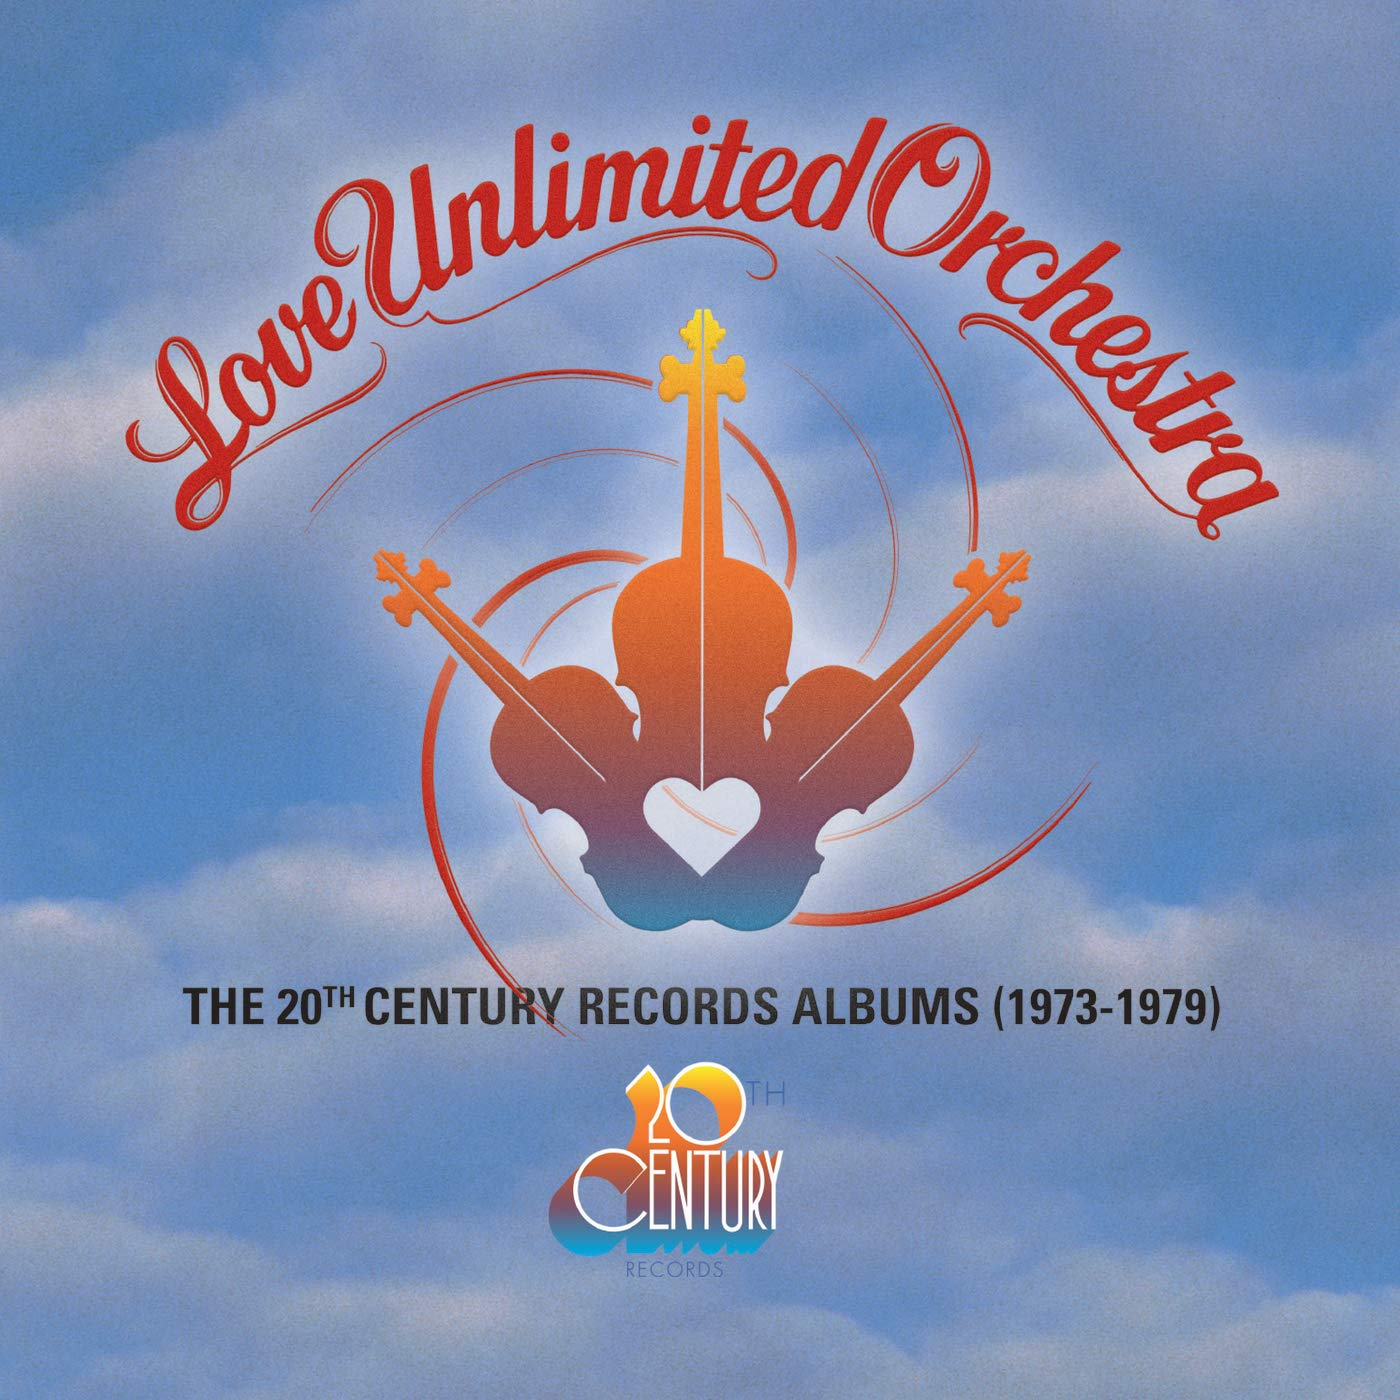 Love Unlimited Orchestra-The 20th Century Records Albums (1973-1979)-(602567524205)-BOXSET-7CD-FLAC-2019-WRE